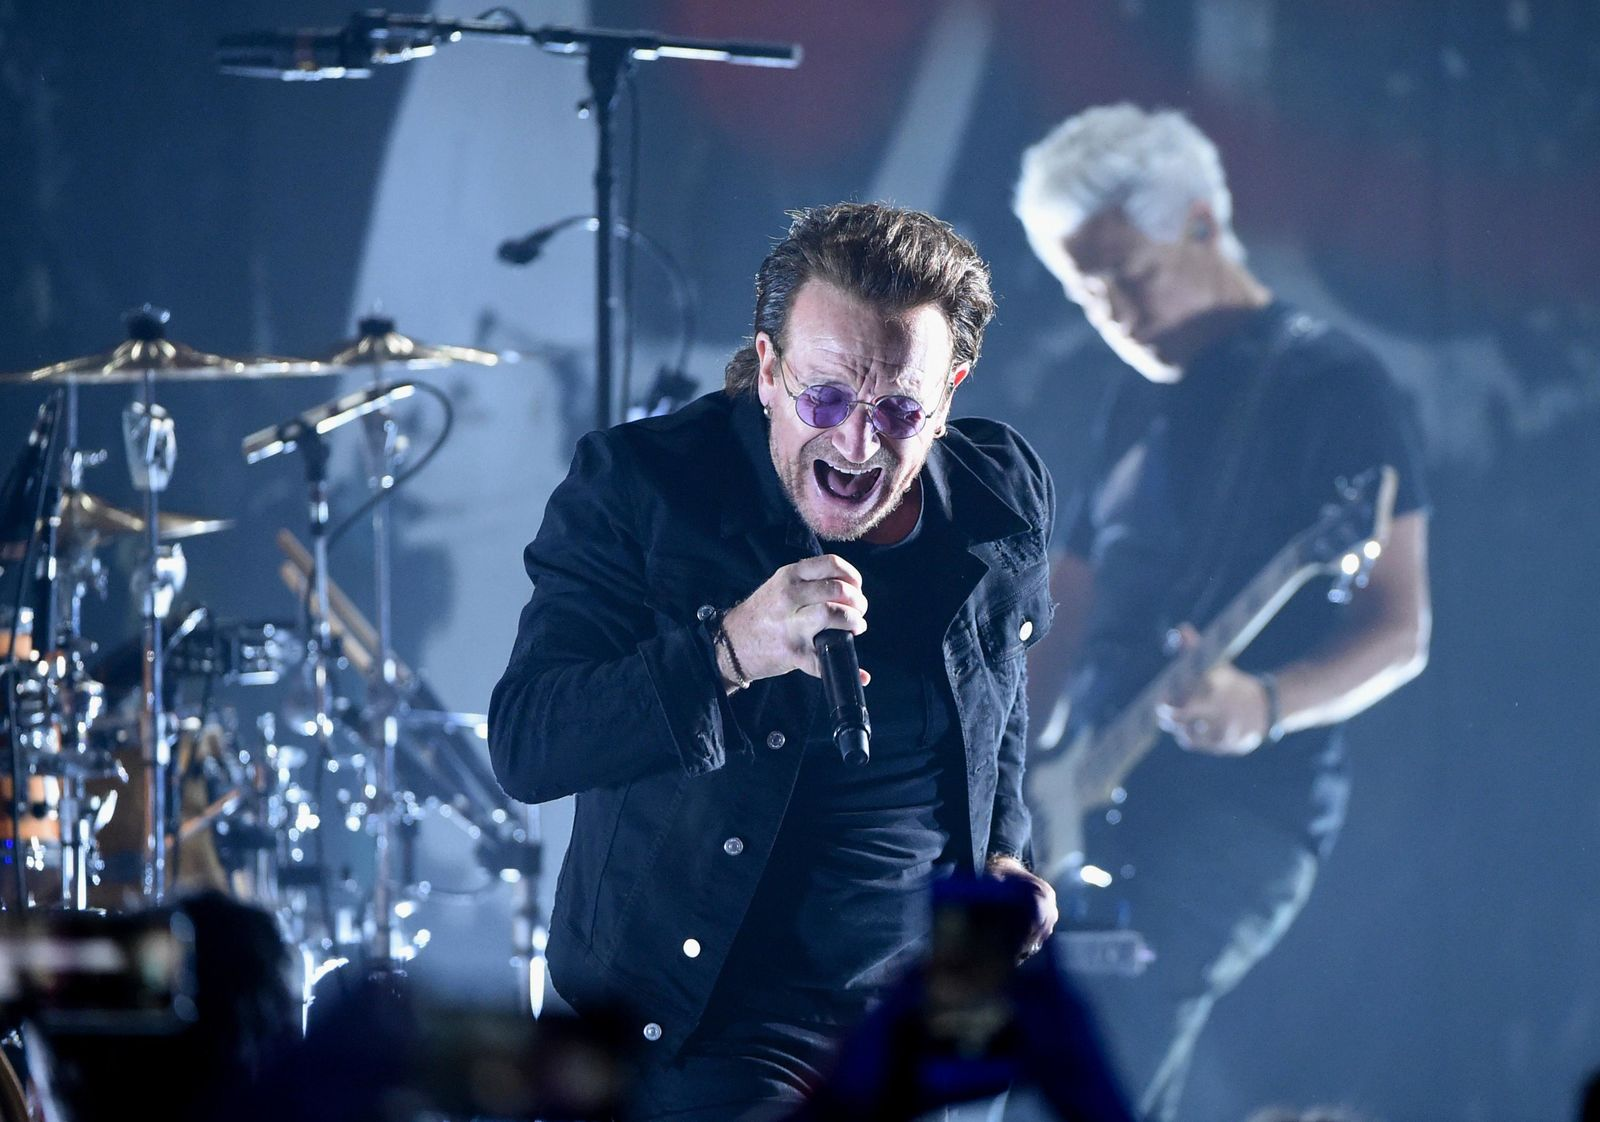 FILE - In this June 11, 2018 file photo,  Bono of U2 performs during a concert at the Apollo Theater in New York.{ } (Photo by Evan Agostini/Invision/AP, File)